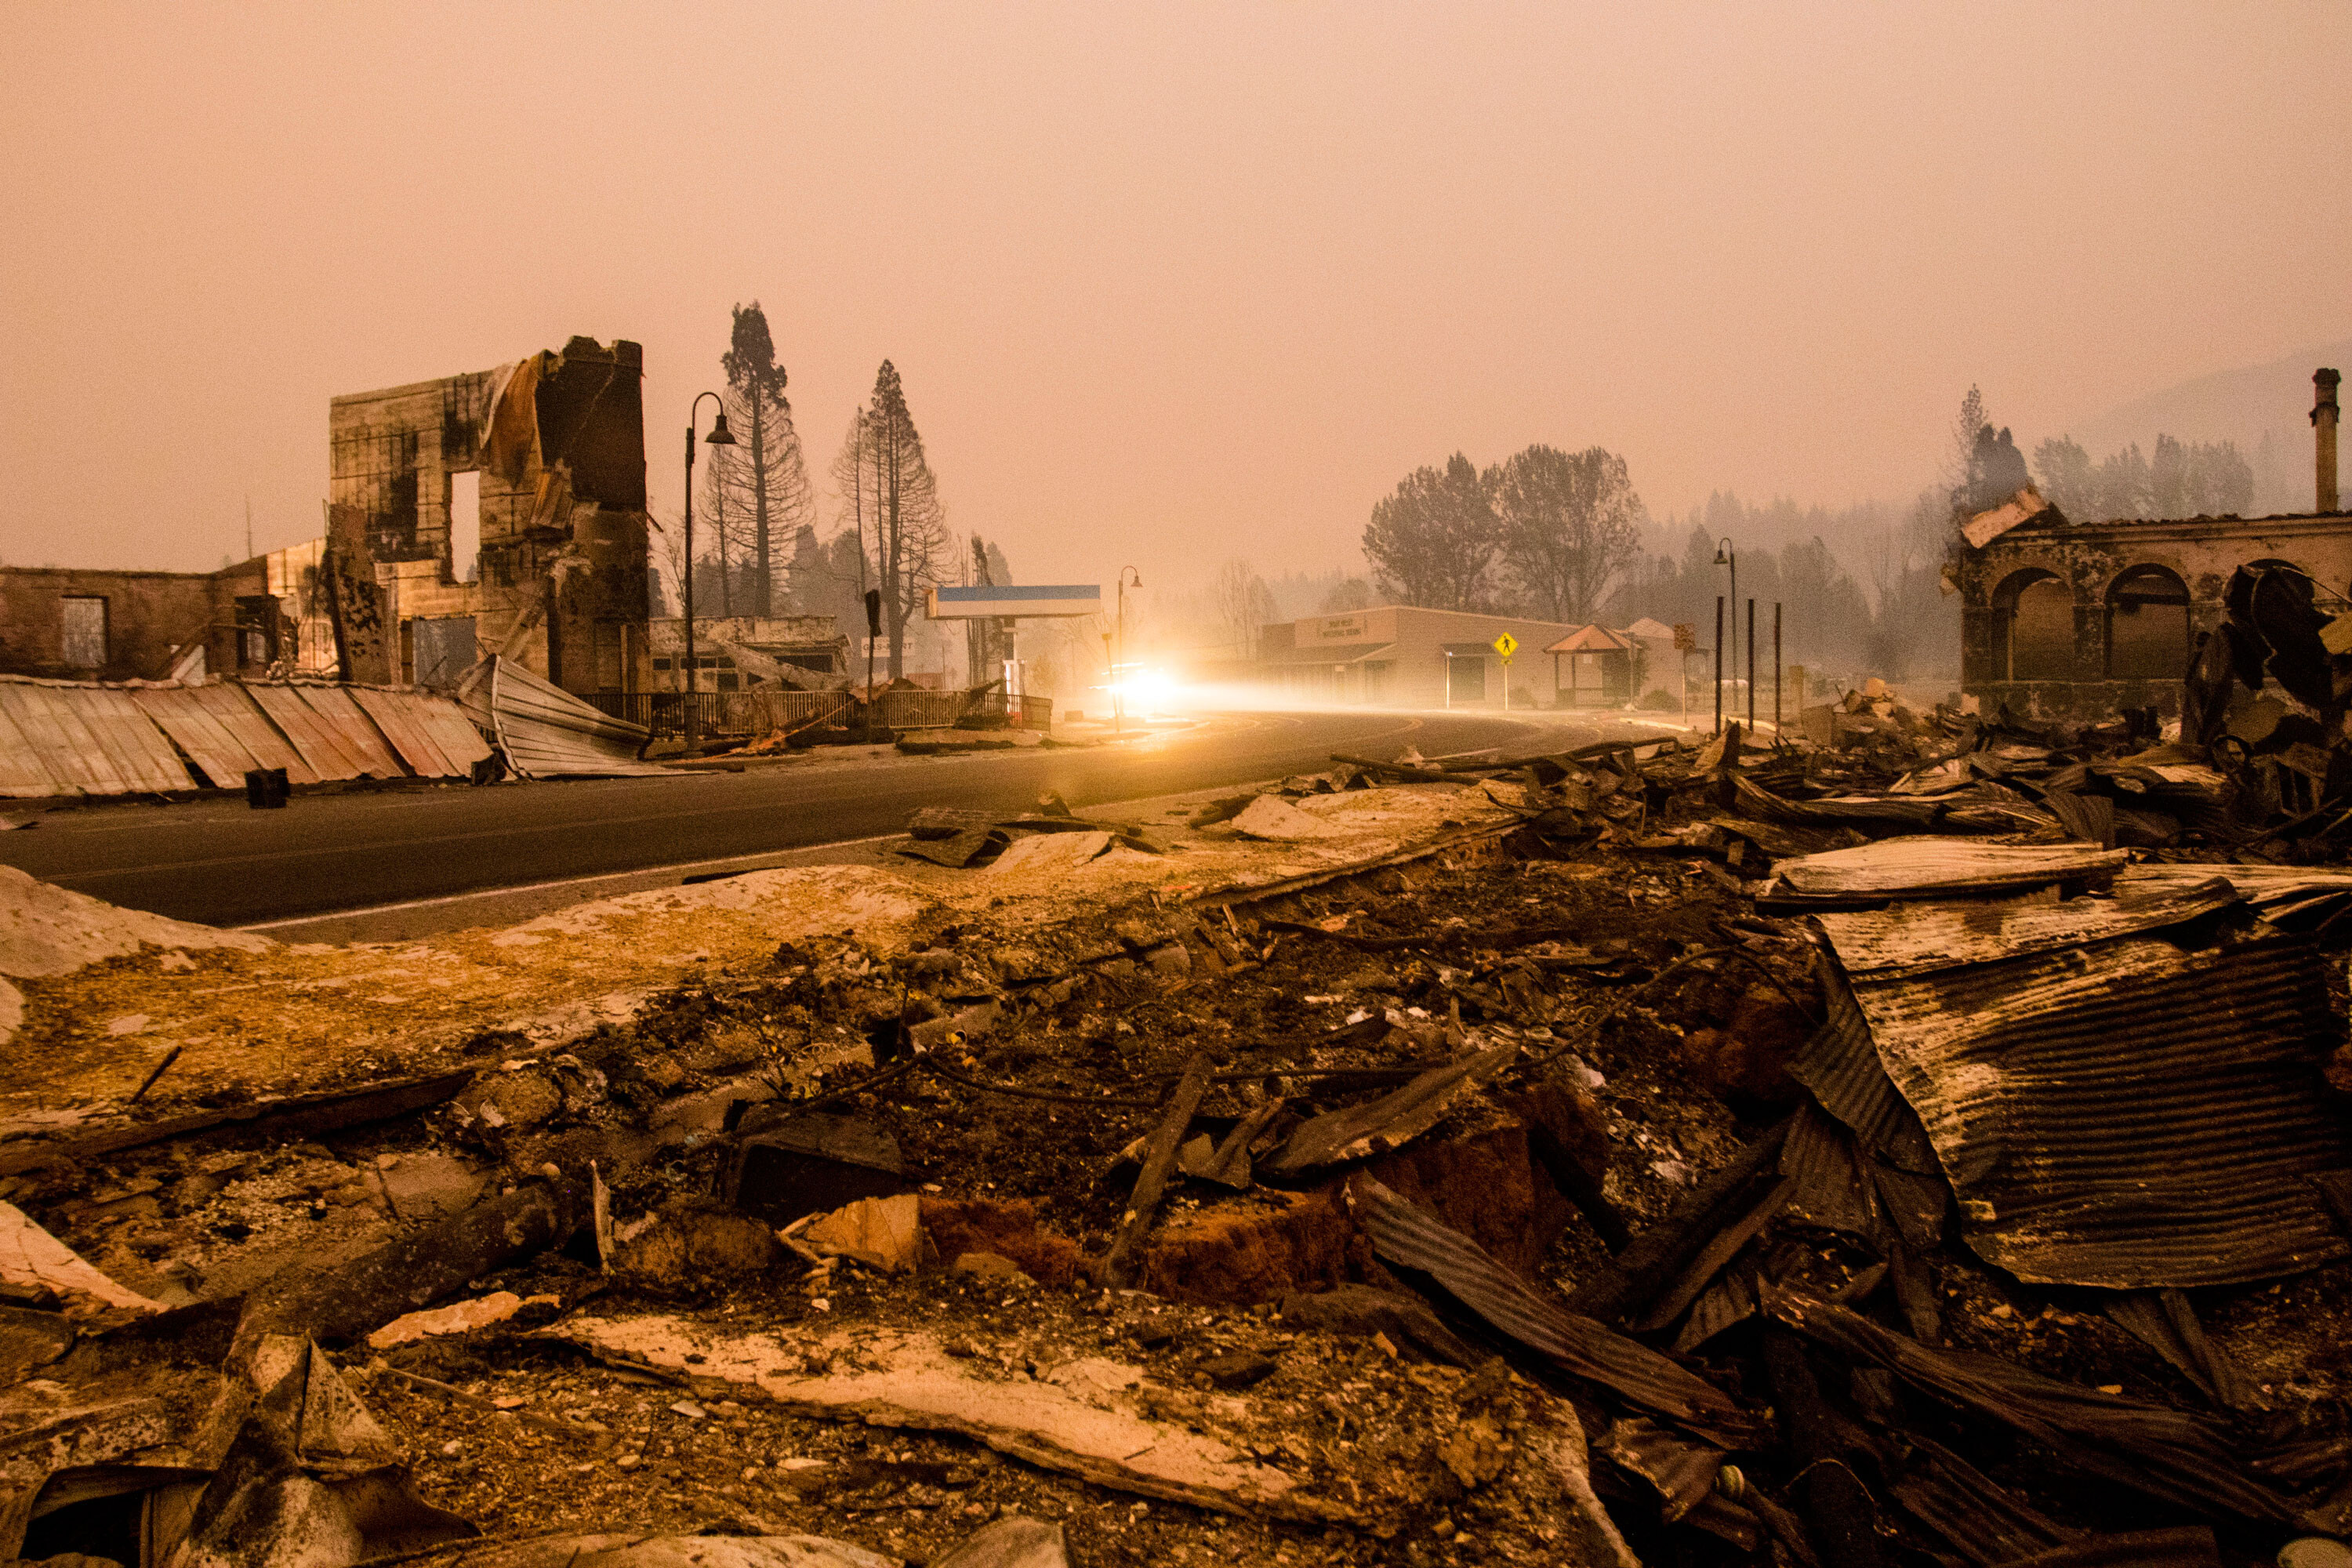 After losing their home to a blaze, they found refuge in a small California town. Then, a fire swept through